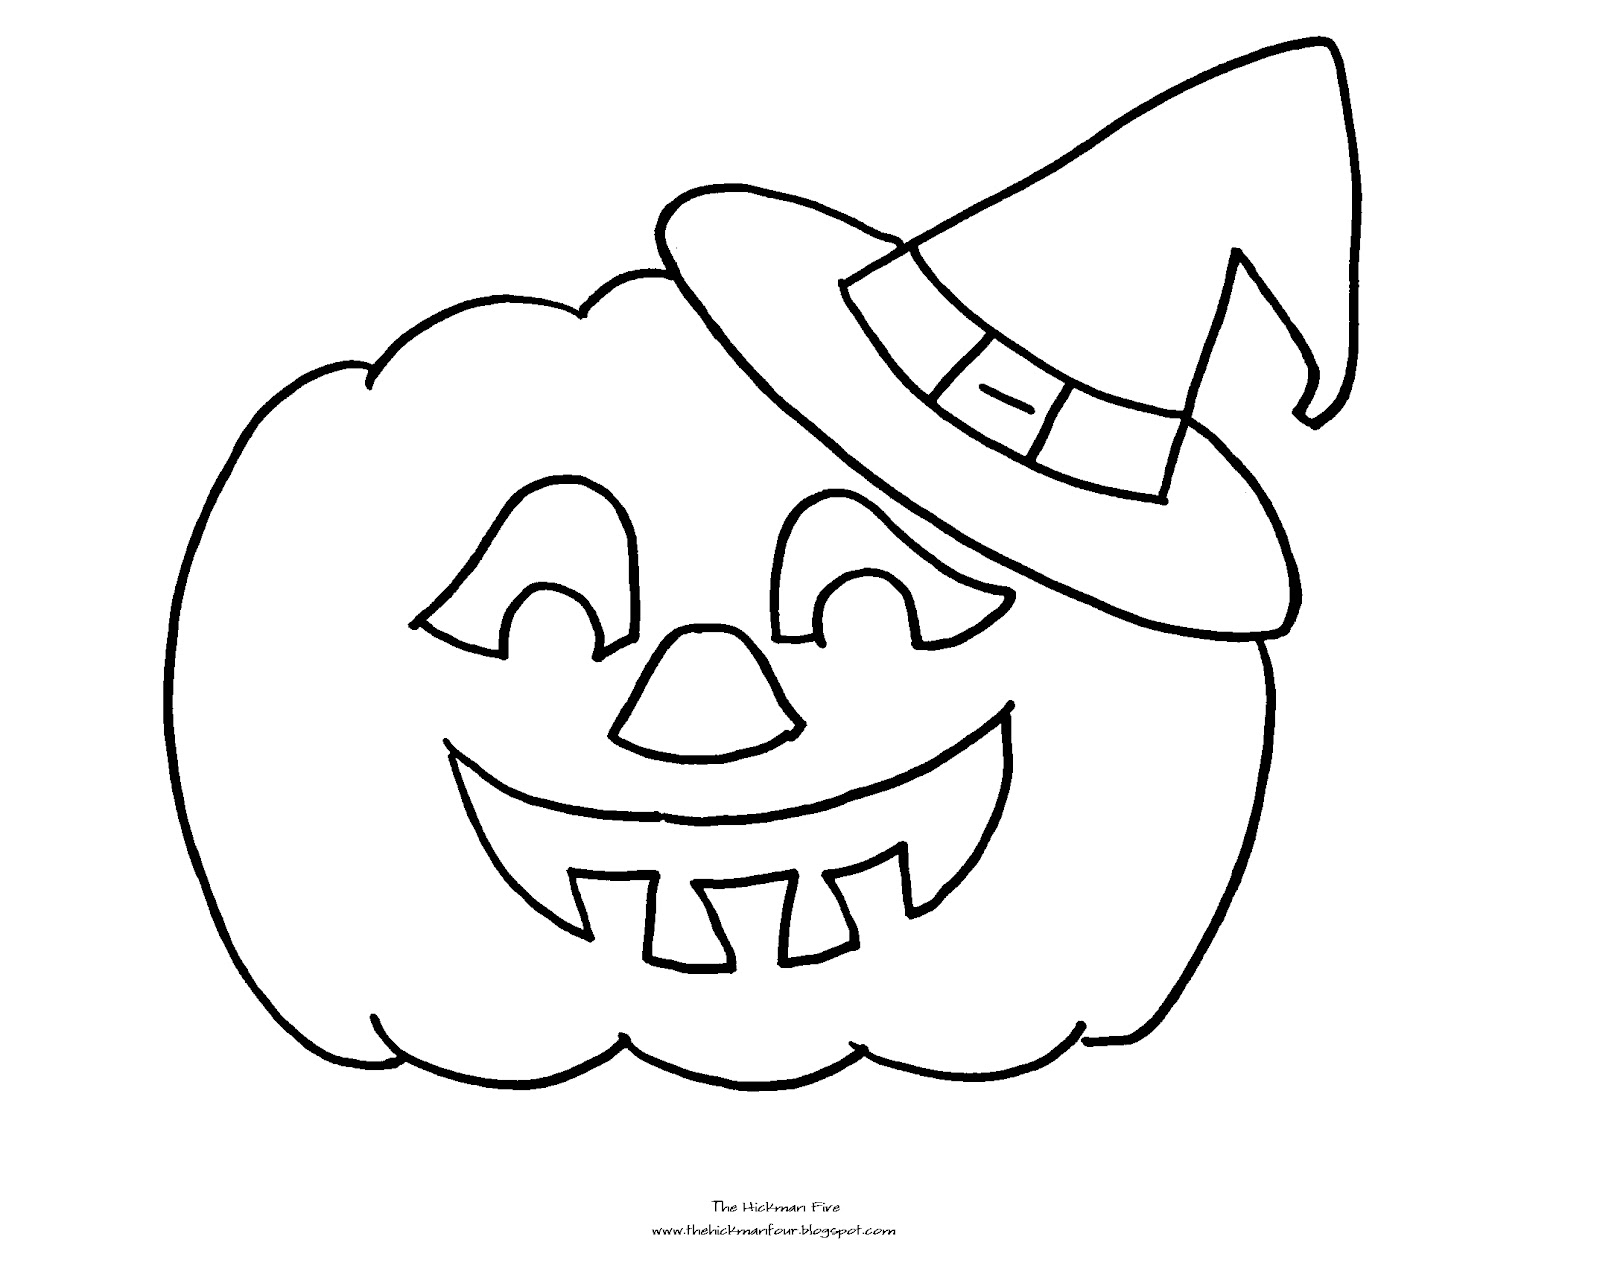 Lantern Coloring Pages At Getcolorings